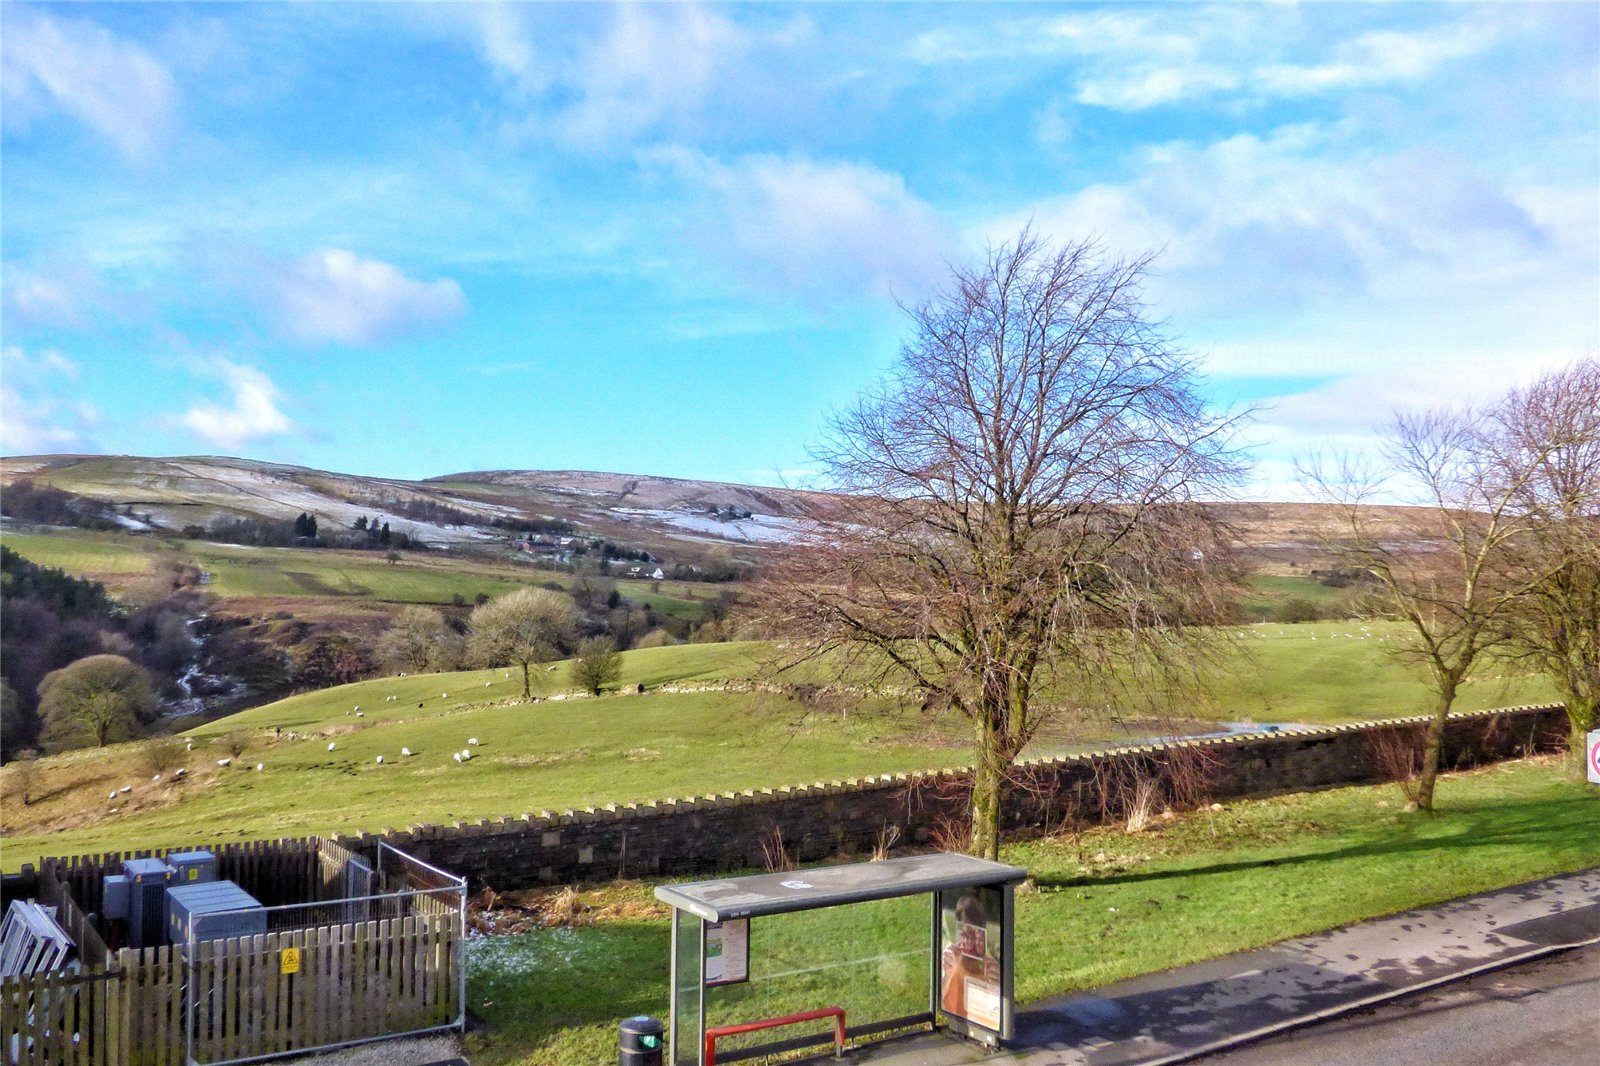 3 Bedrooms Terraced House for sale in Burnley Road, Loveclough, Rossendale, Lancashire, BB4